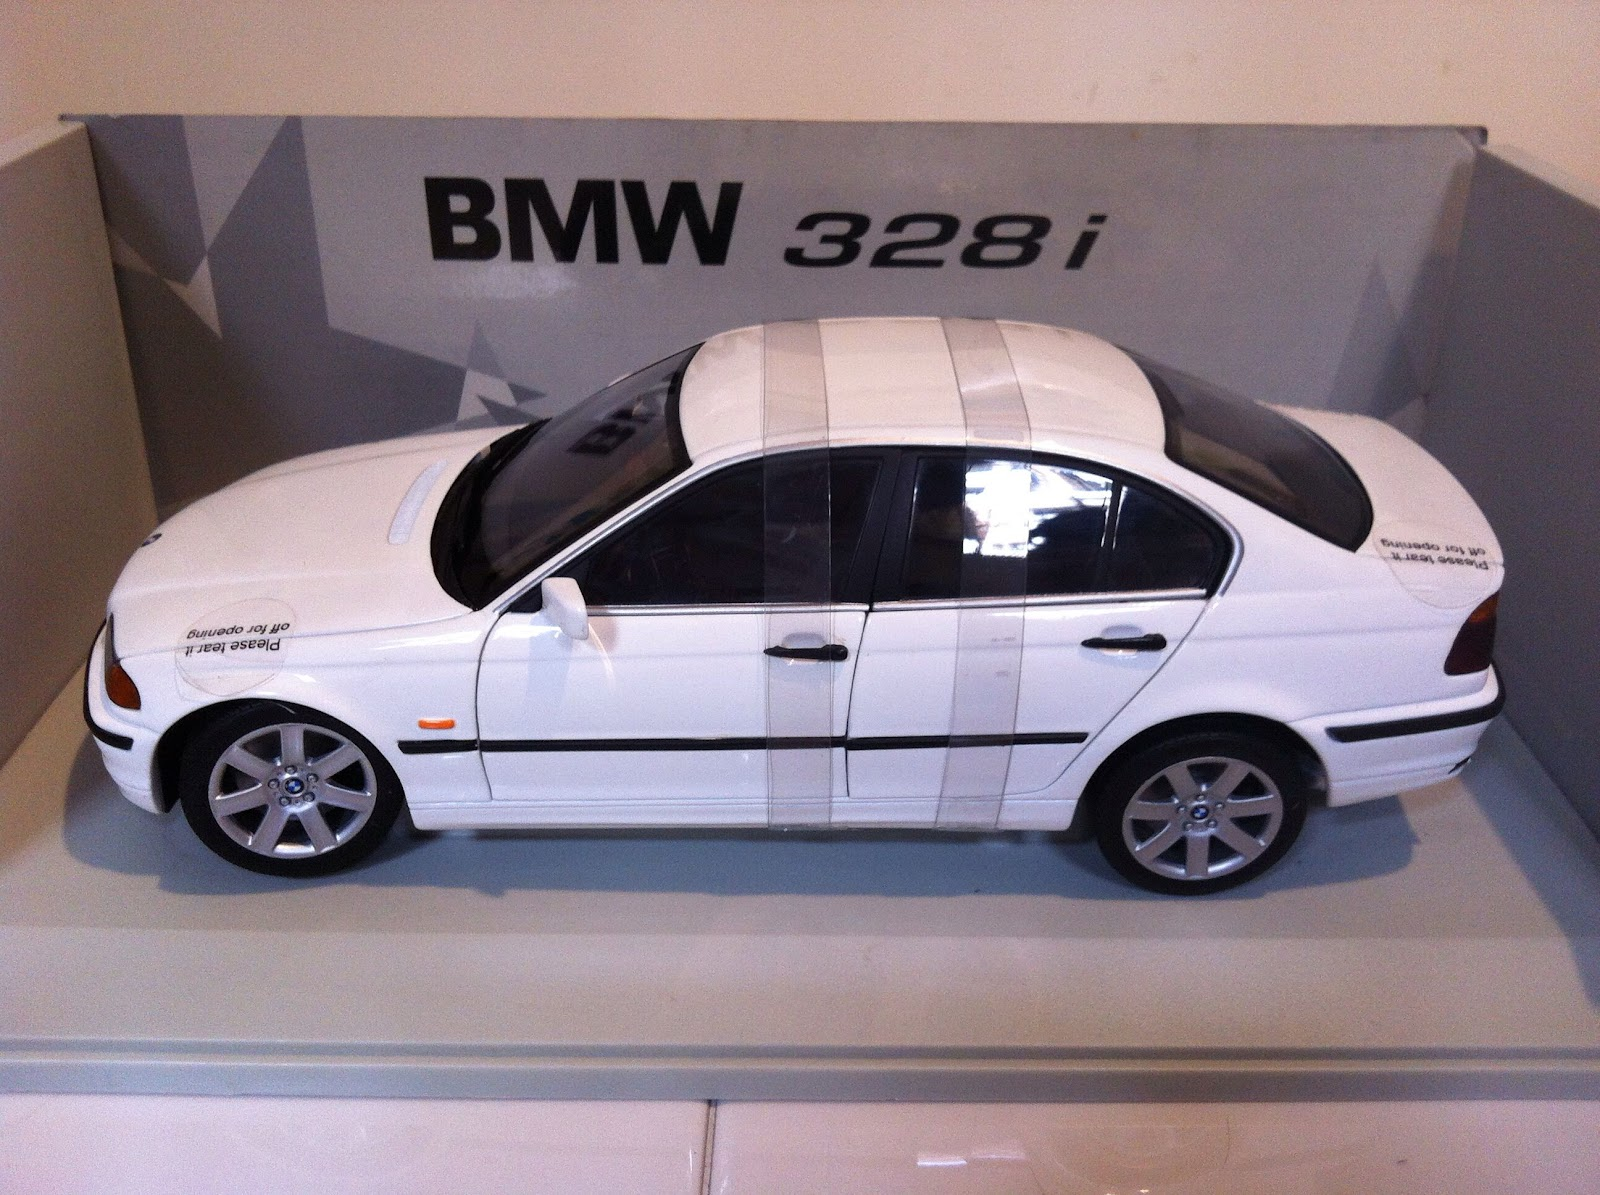 sold bmw 328i 1 18 1 18 scale diecast ut model s 65 9338 9509 singapore. Black Bedroom Furniture Sets. Home Design Ideas